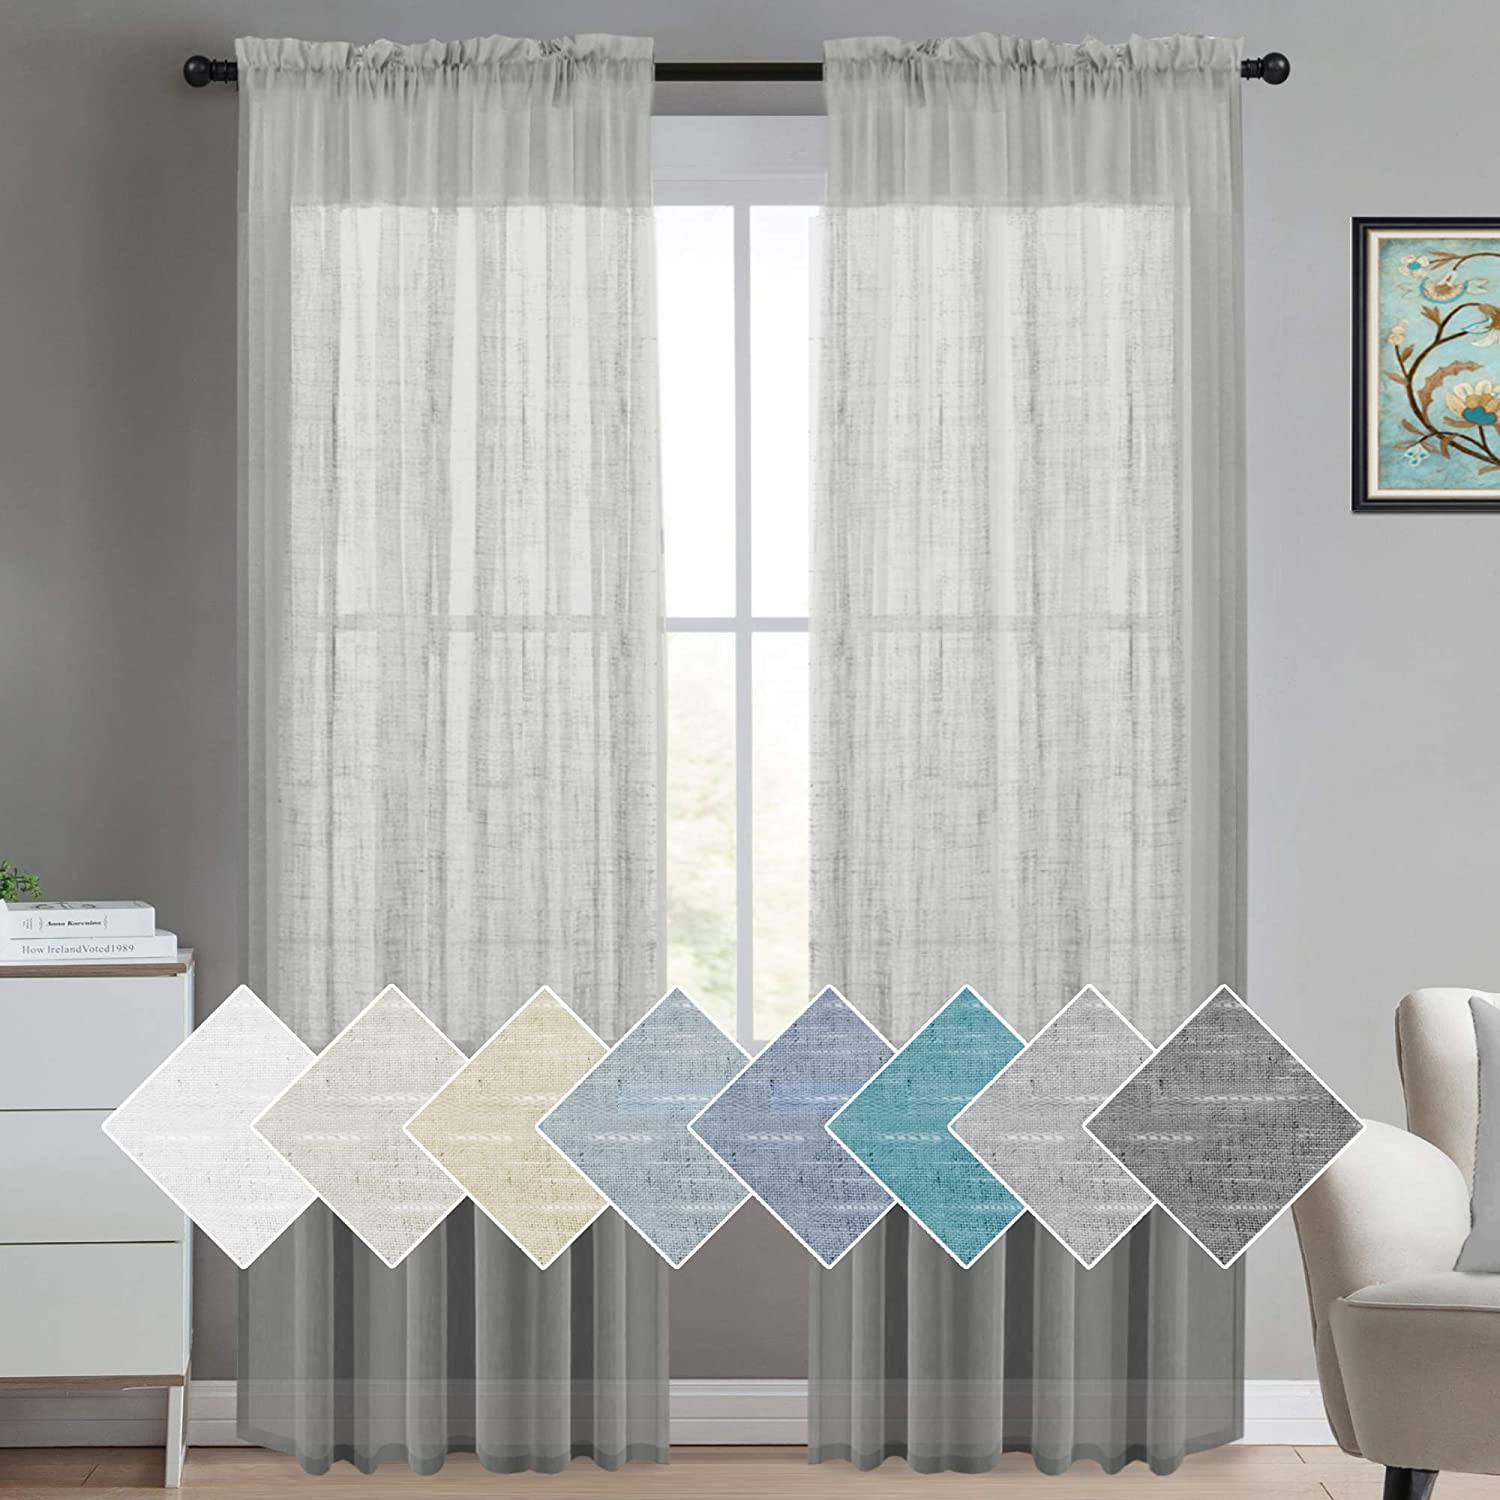 Linen Sheer Curtains 84 Inches Long Linen Blended Curtains Natural Linen Curtain Panels Rich Quality Sheers Curtains For Bedroom Drapes Semi Sheer Linen Look Curtain Panels (2 Panel, Dove Gray)